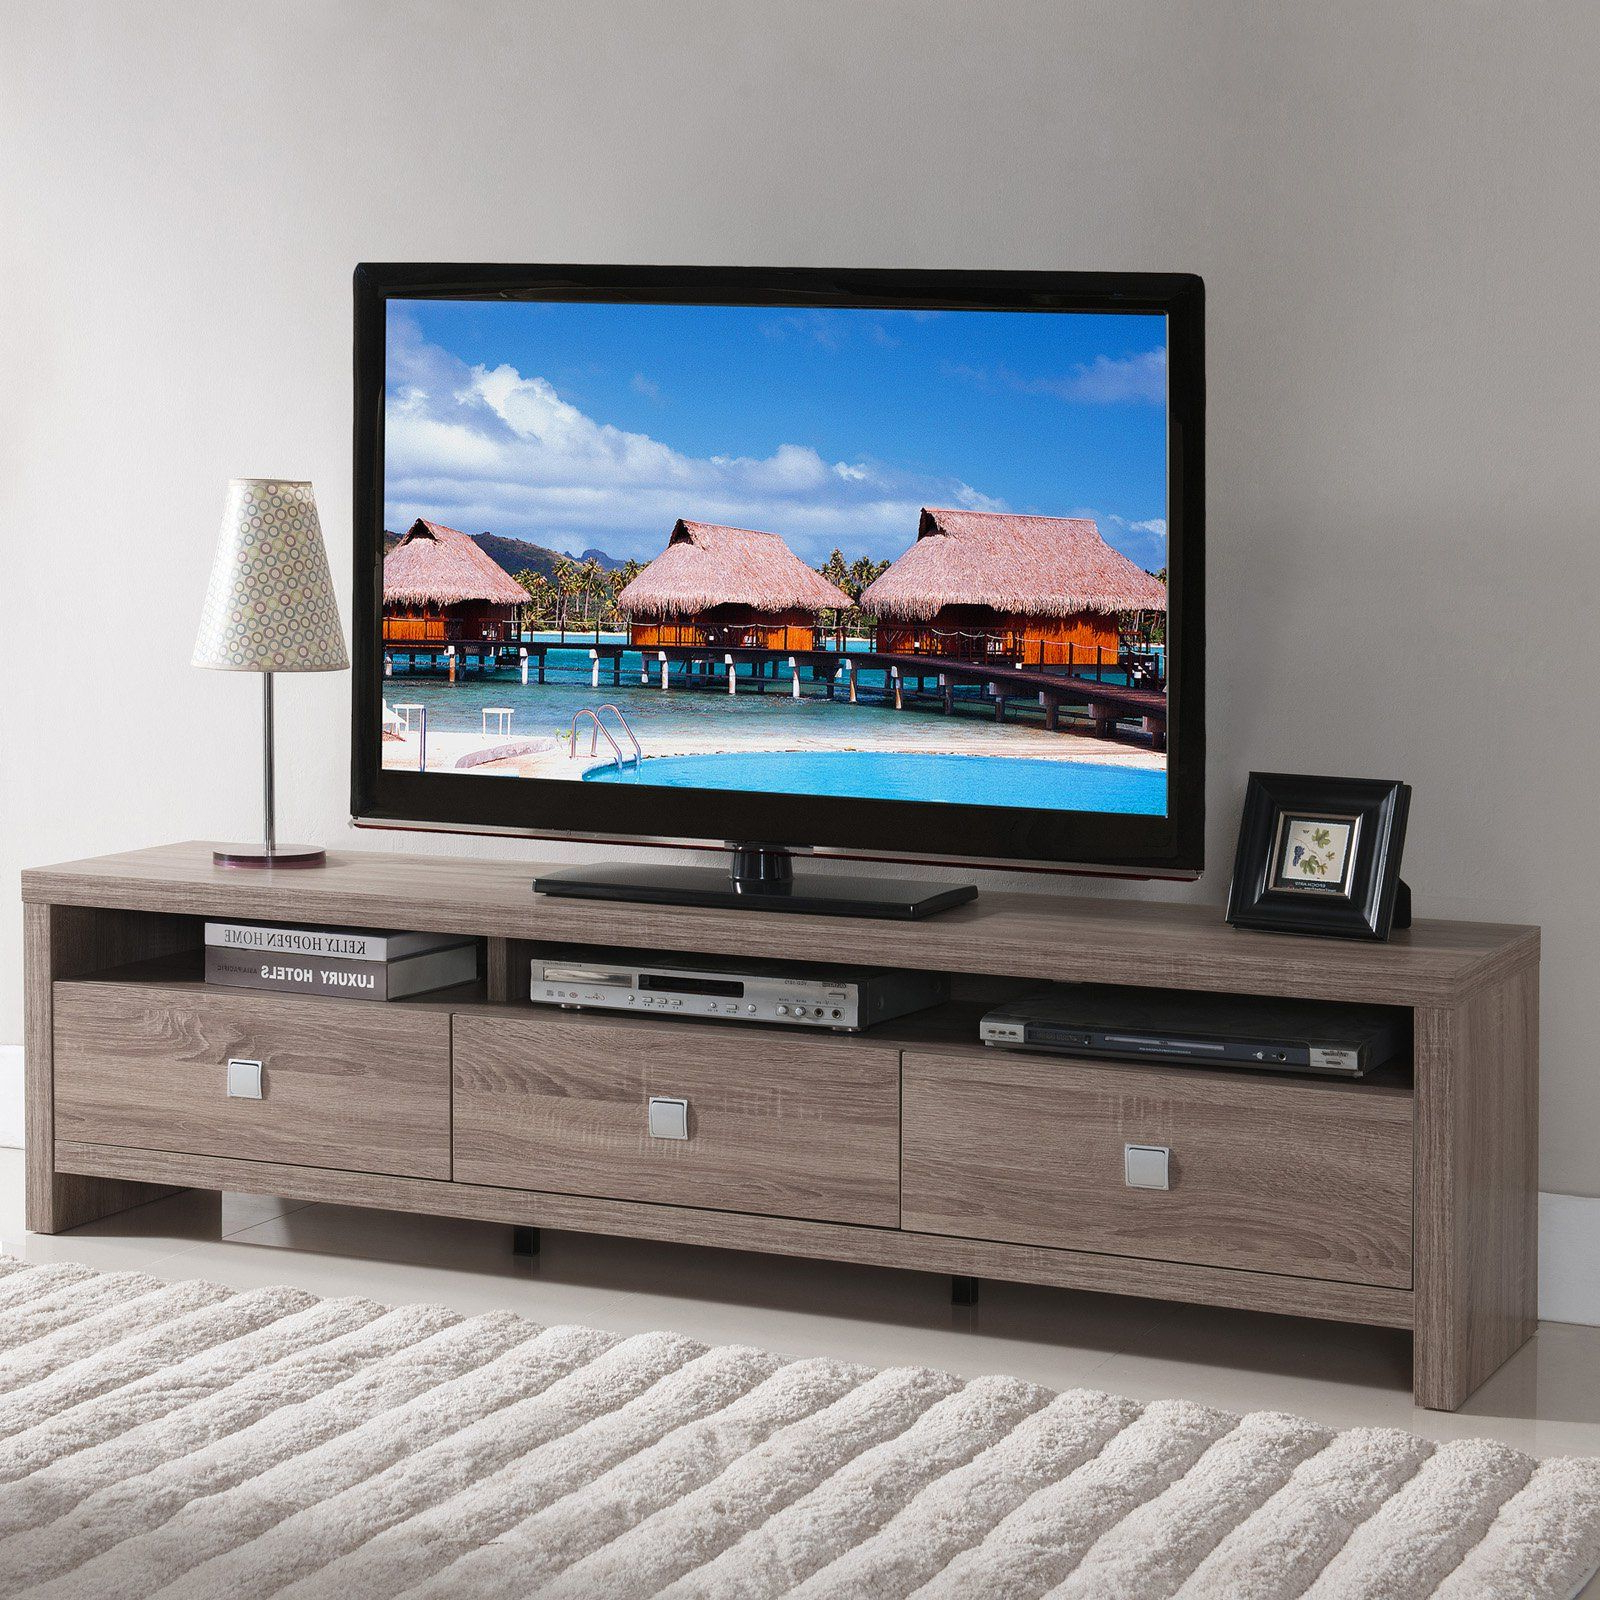 From Hayneedle Within Contemporary Tv Stands For Flat Screens (View 9 of 20)